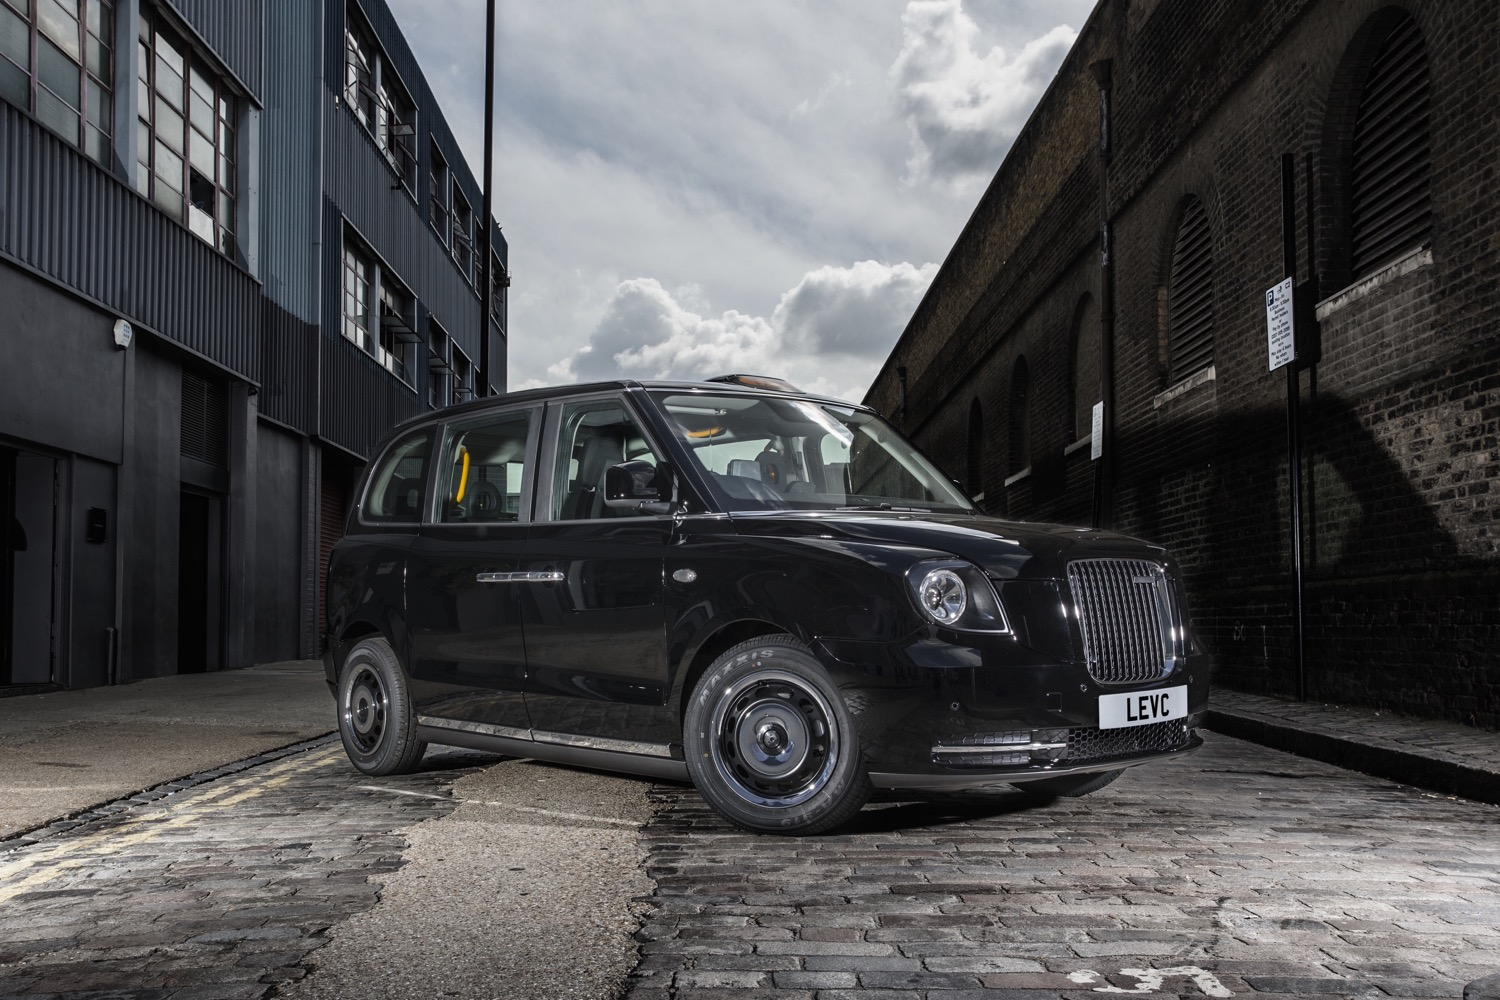 London S Anticipated Electric Black Cab Launch Loses Its Spark